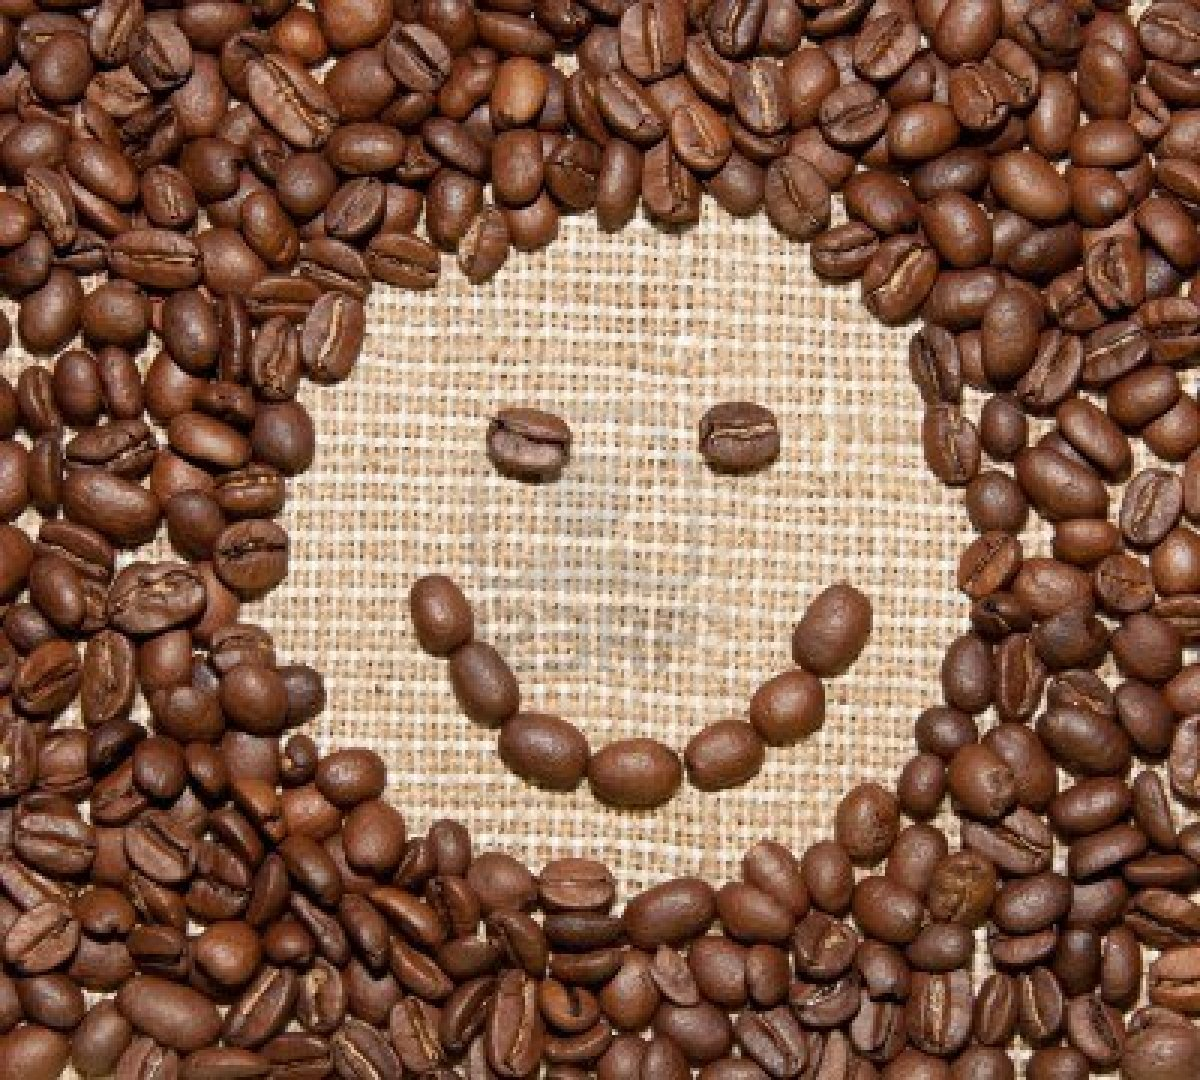 10201646-coffee-beans-smile-on-burlap-background.jpg